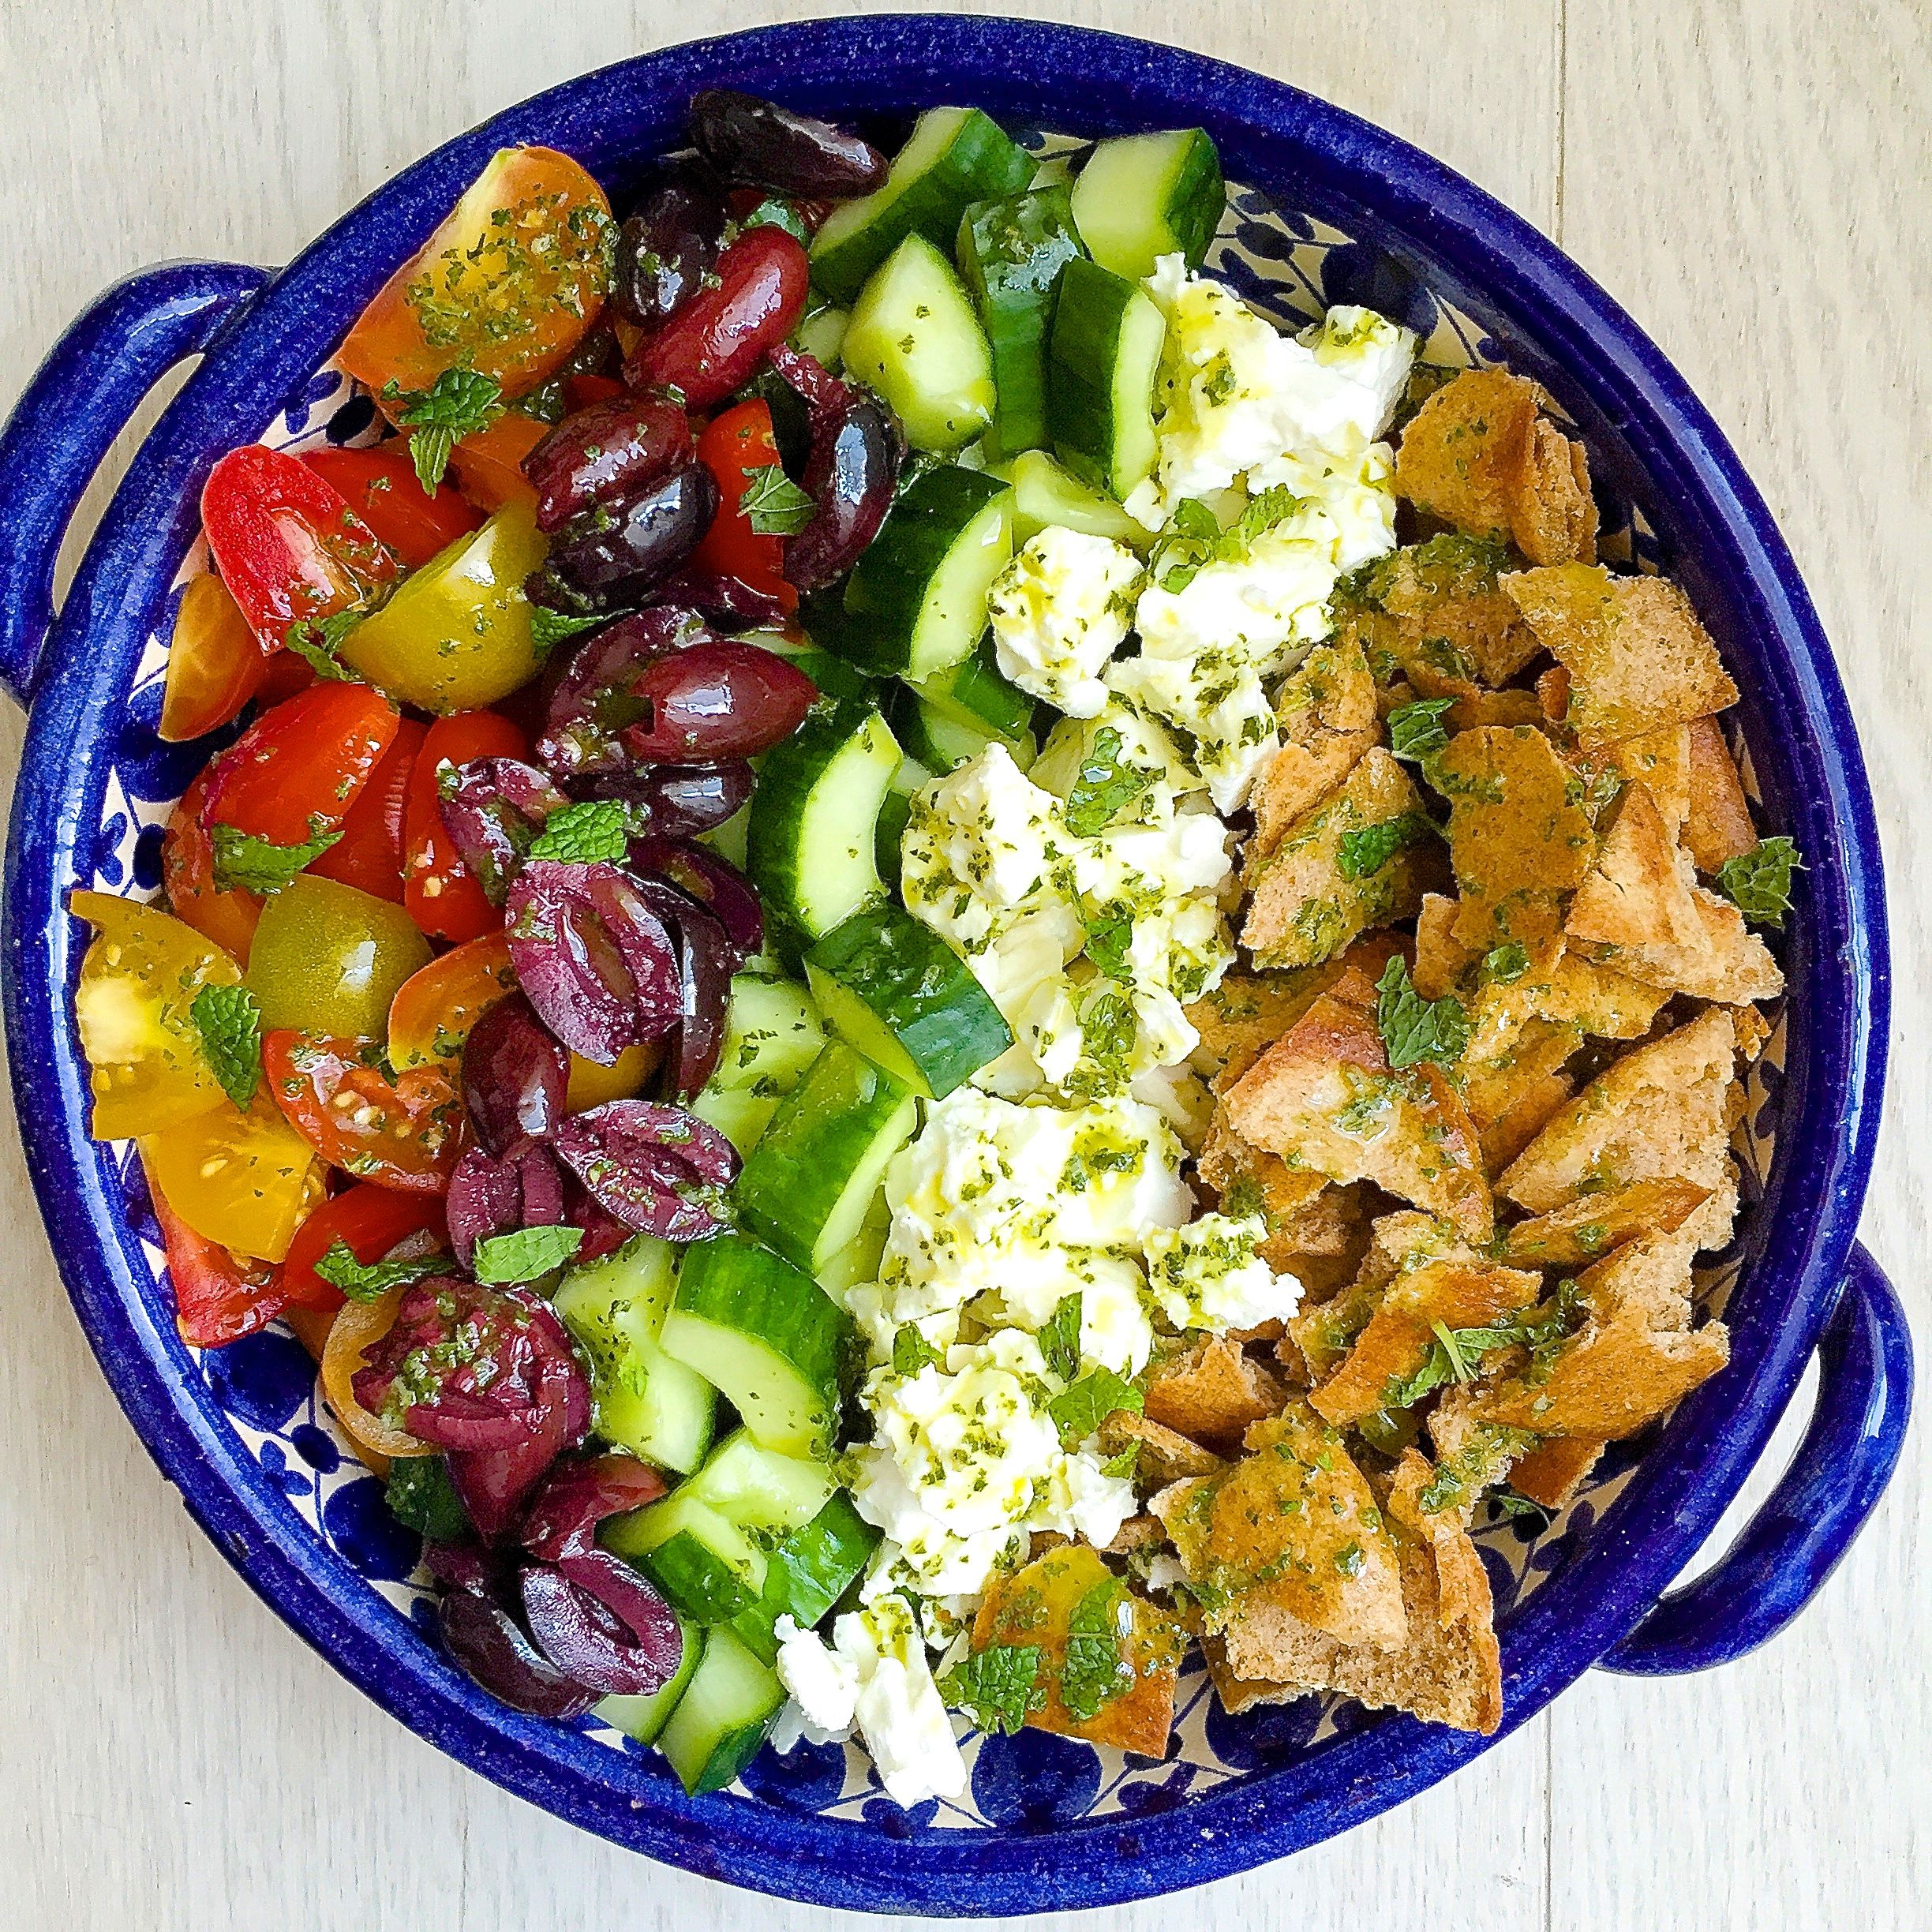 35 Super-Simple Salads To Whip Up For Dinner